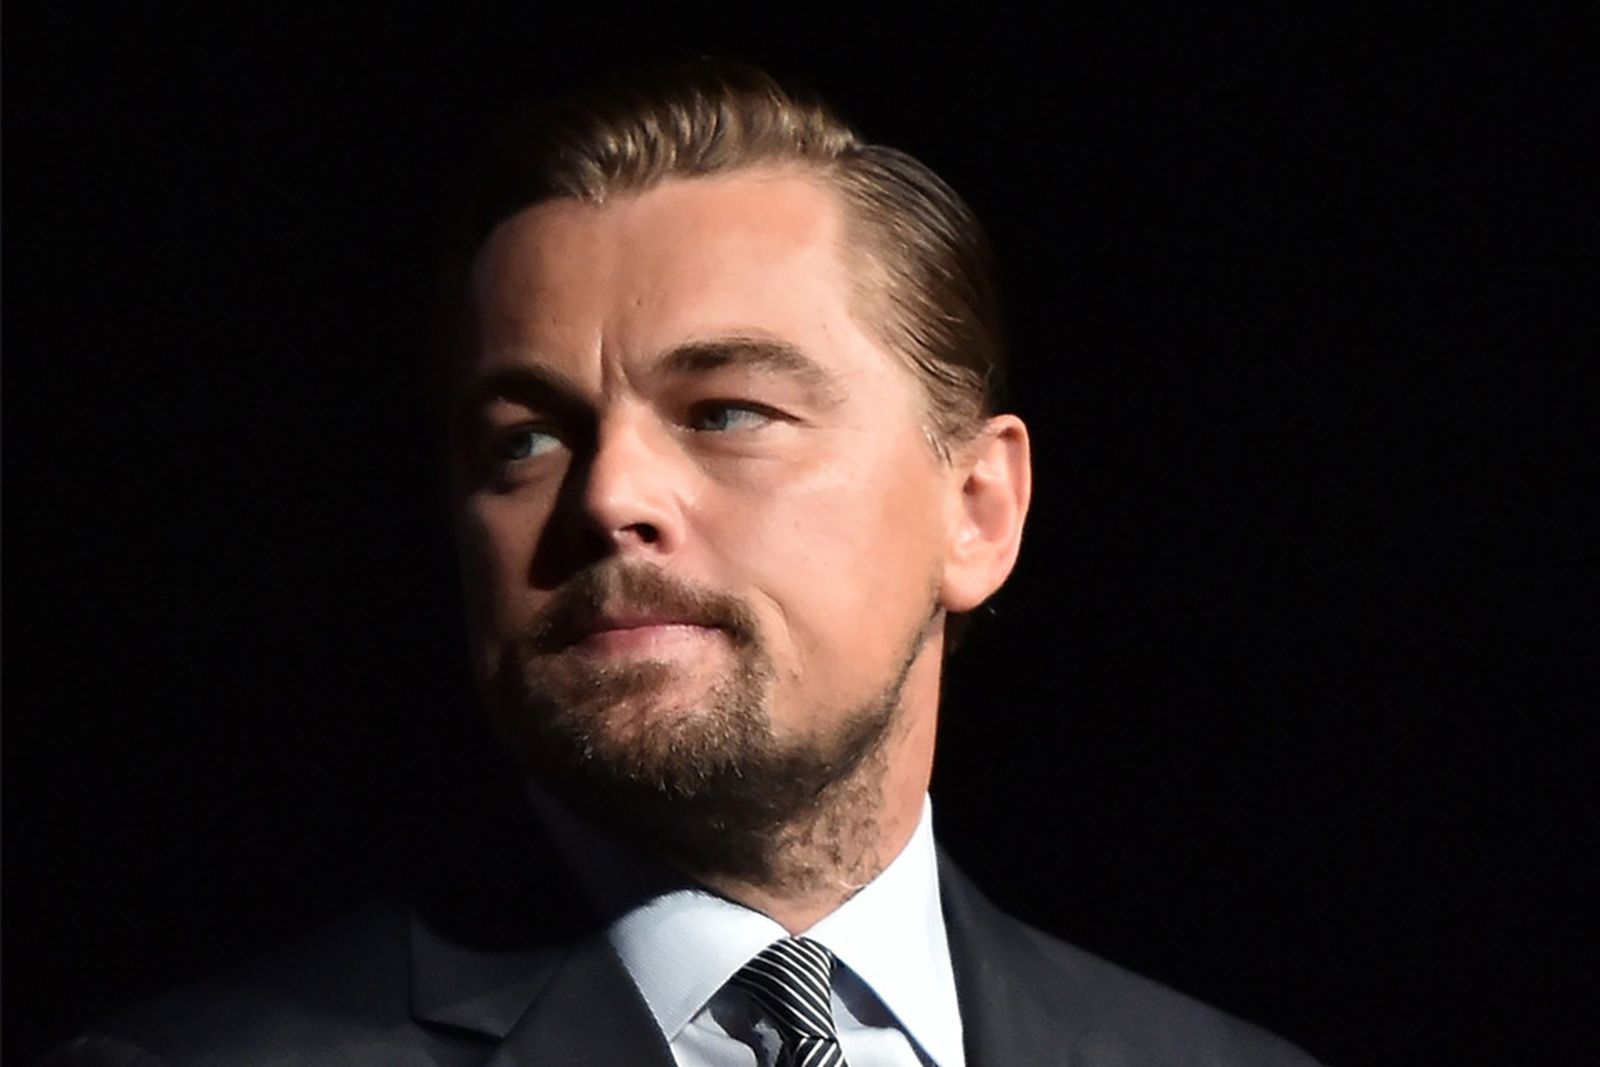 leonardo dicaprio teaser Margot Robbie Once Upon a Time in Hollywood al pacino